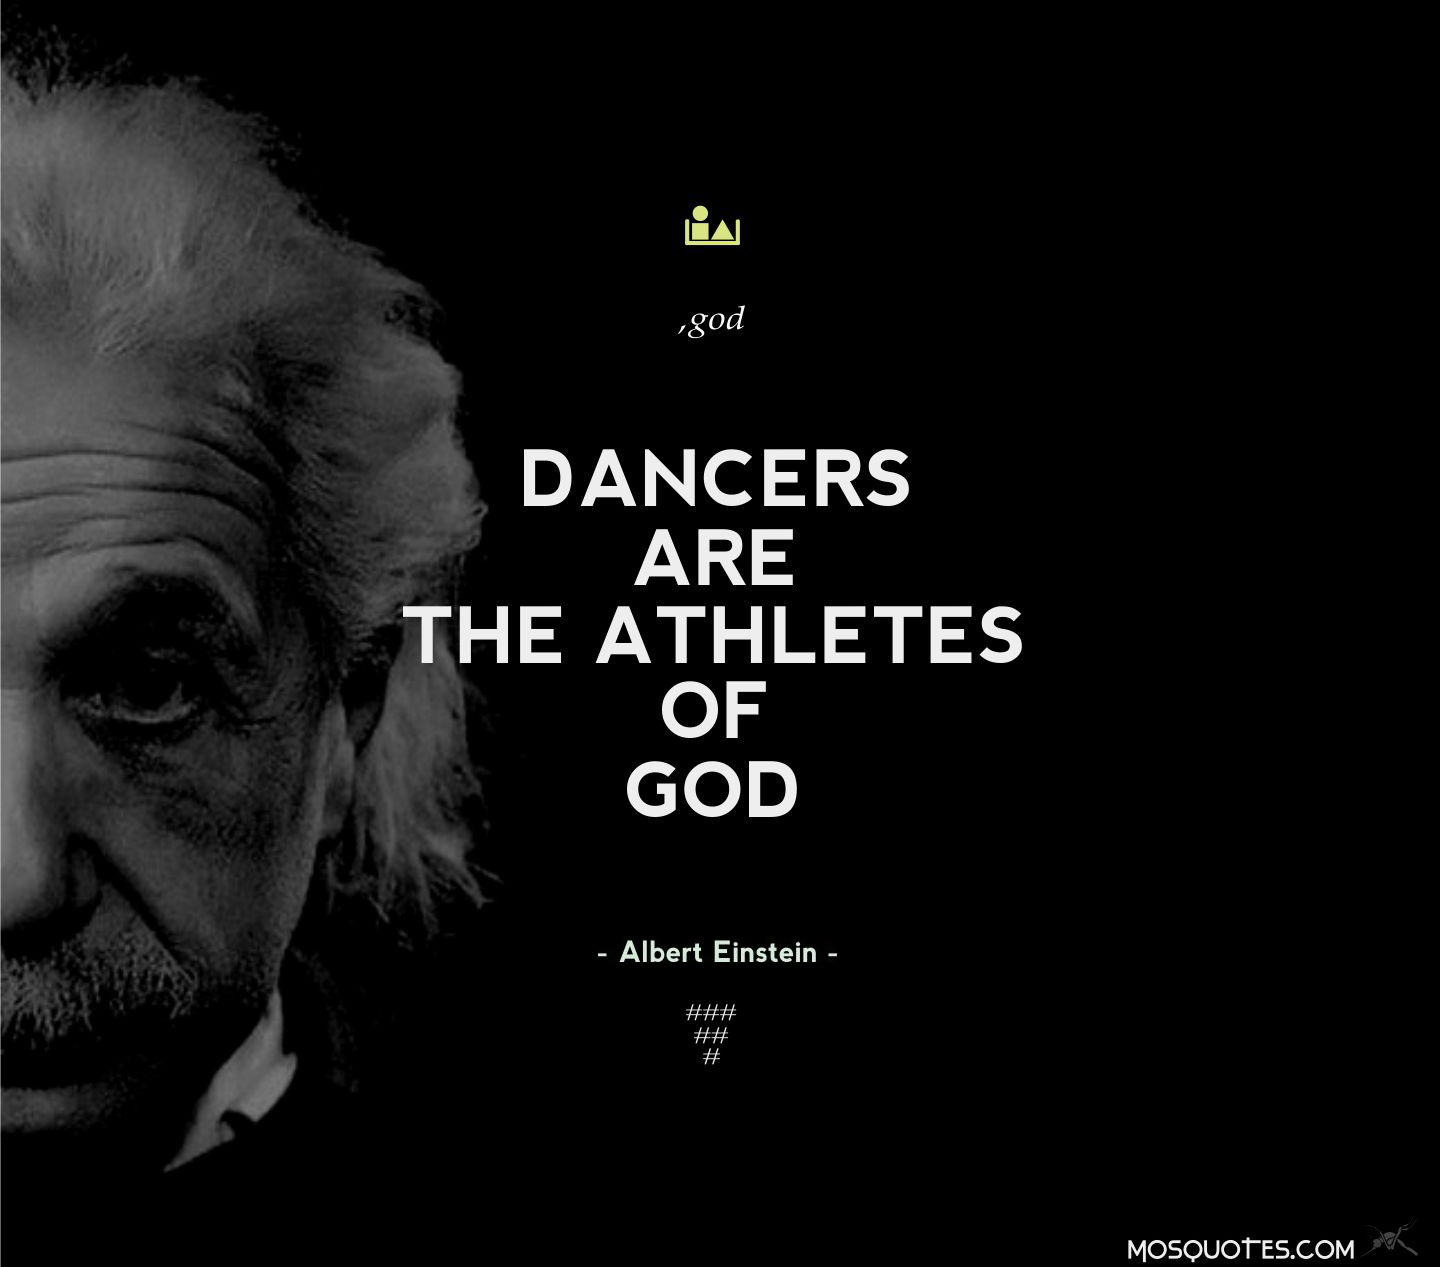 Best Motivational Quotes For Youth Athletes: Quotes About Dancers Being Athletes. QuotesGram